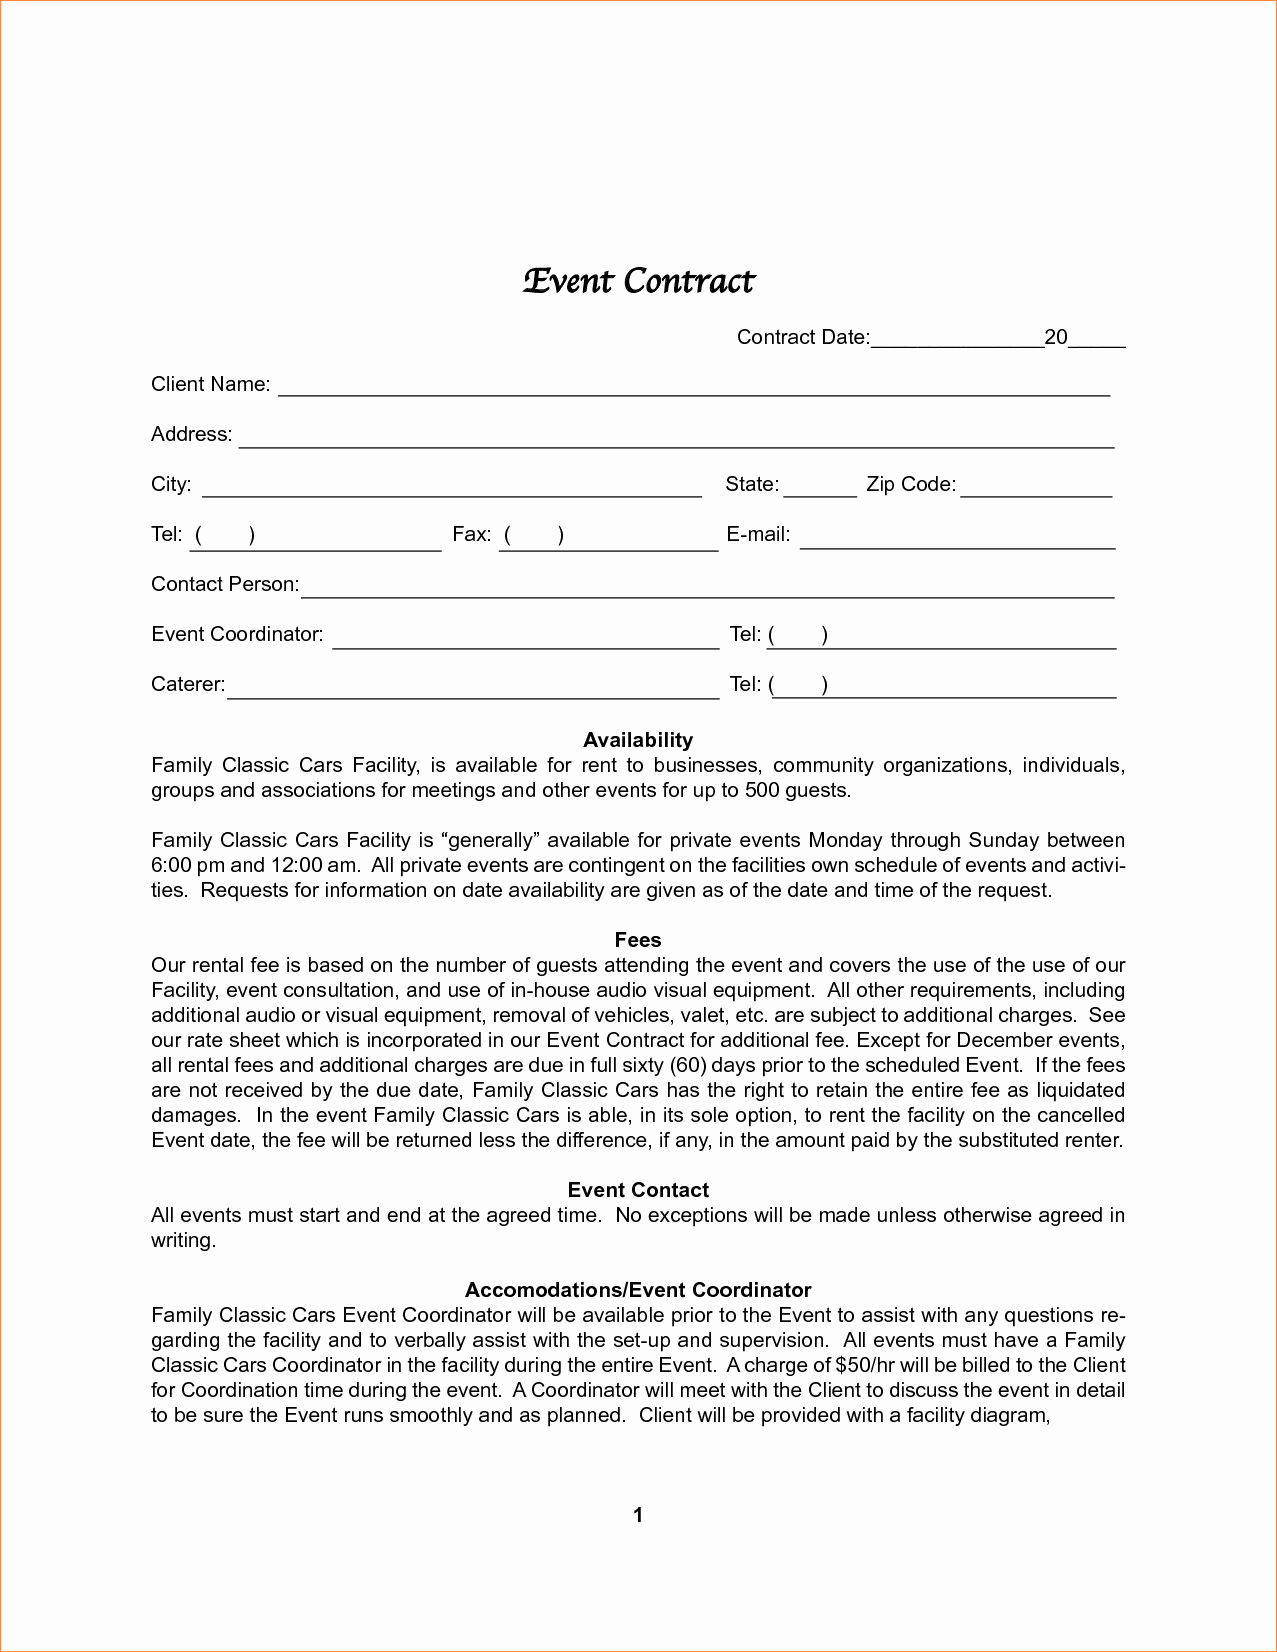 Party Planner Contract Template Beautiful 011 Plan Template event Contract Sample Contracts for